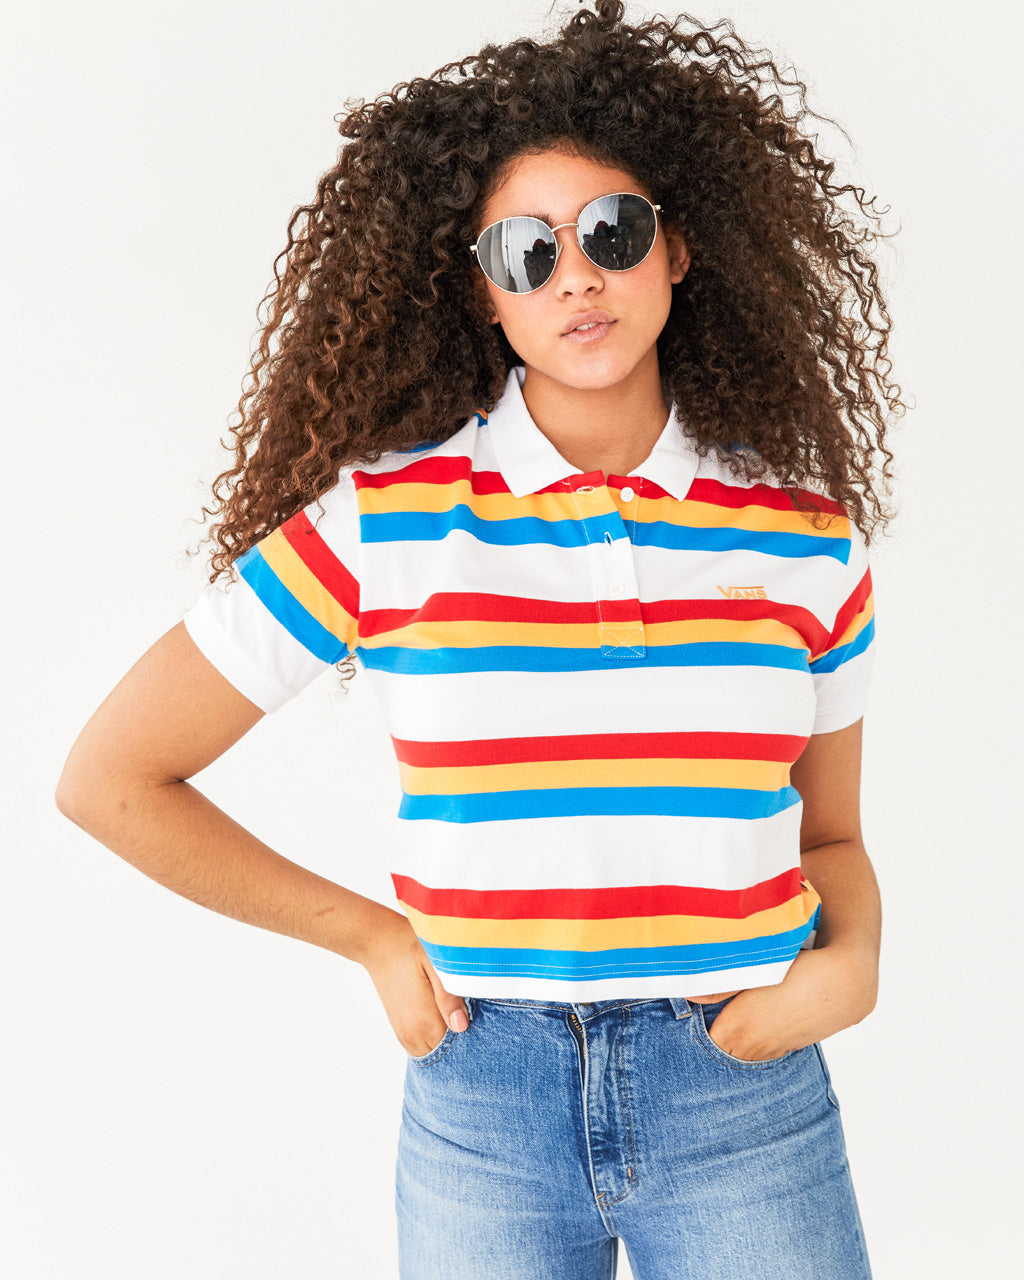 upper body shot of model wearing a white vans polo with red, yellow, and blue stripes paired with light wash denim